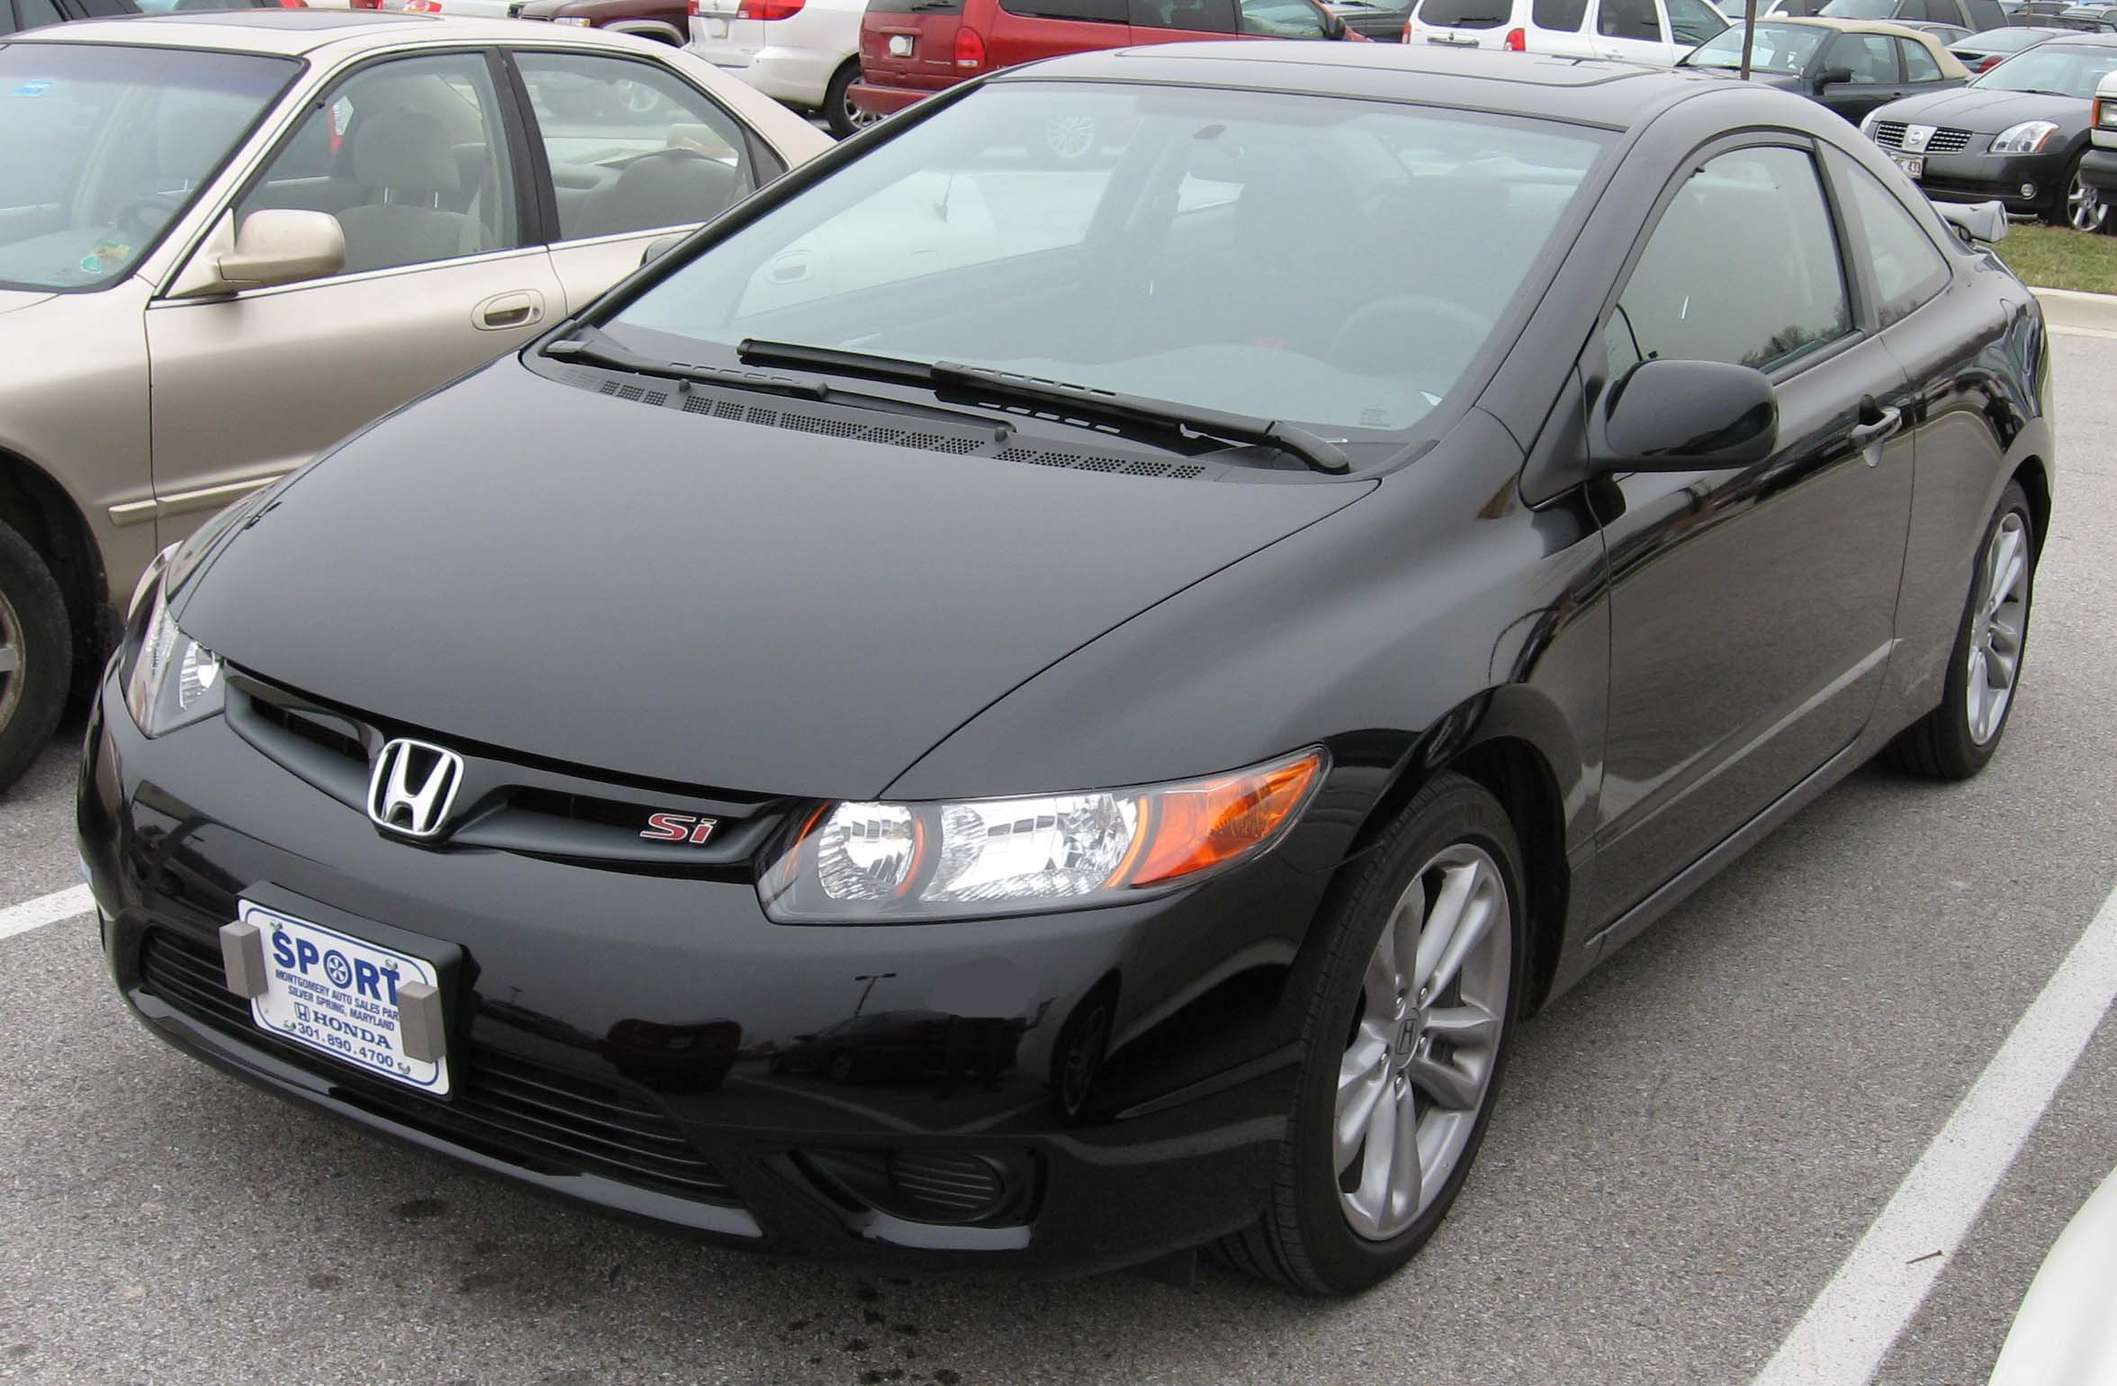 Honda Civic Si Coupe #9216358